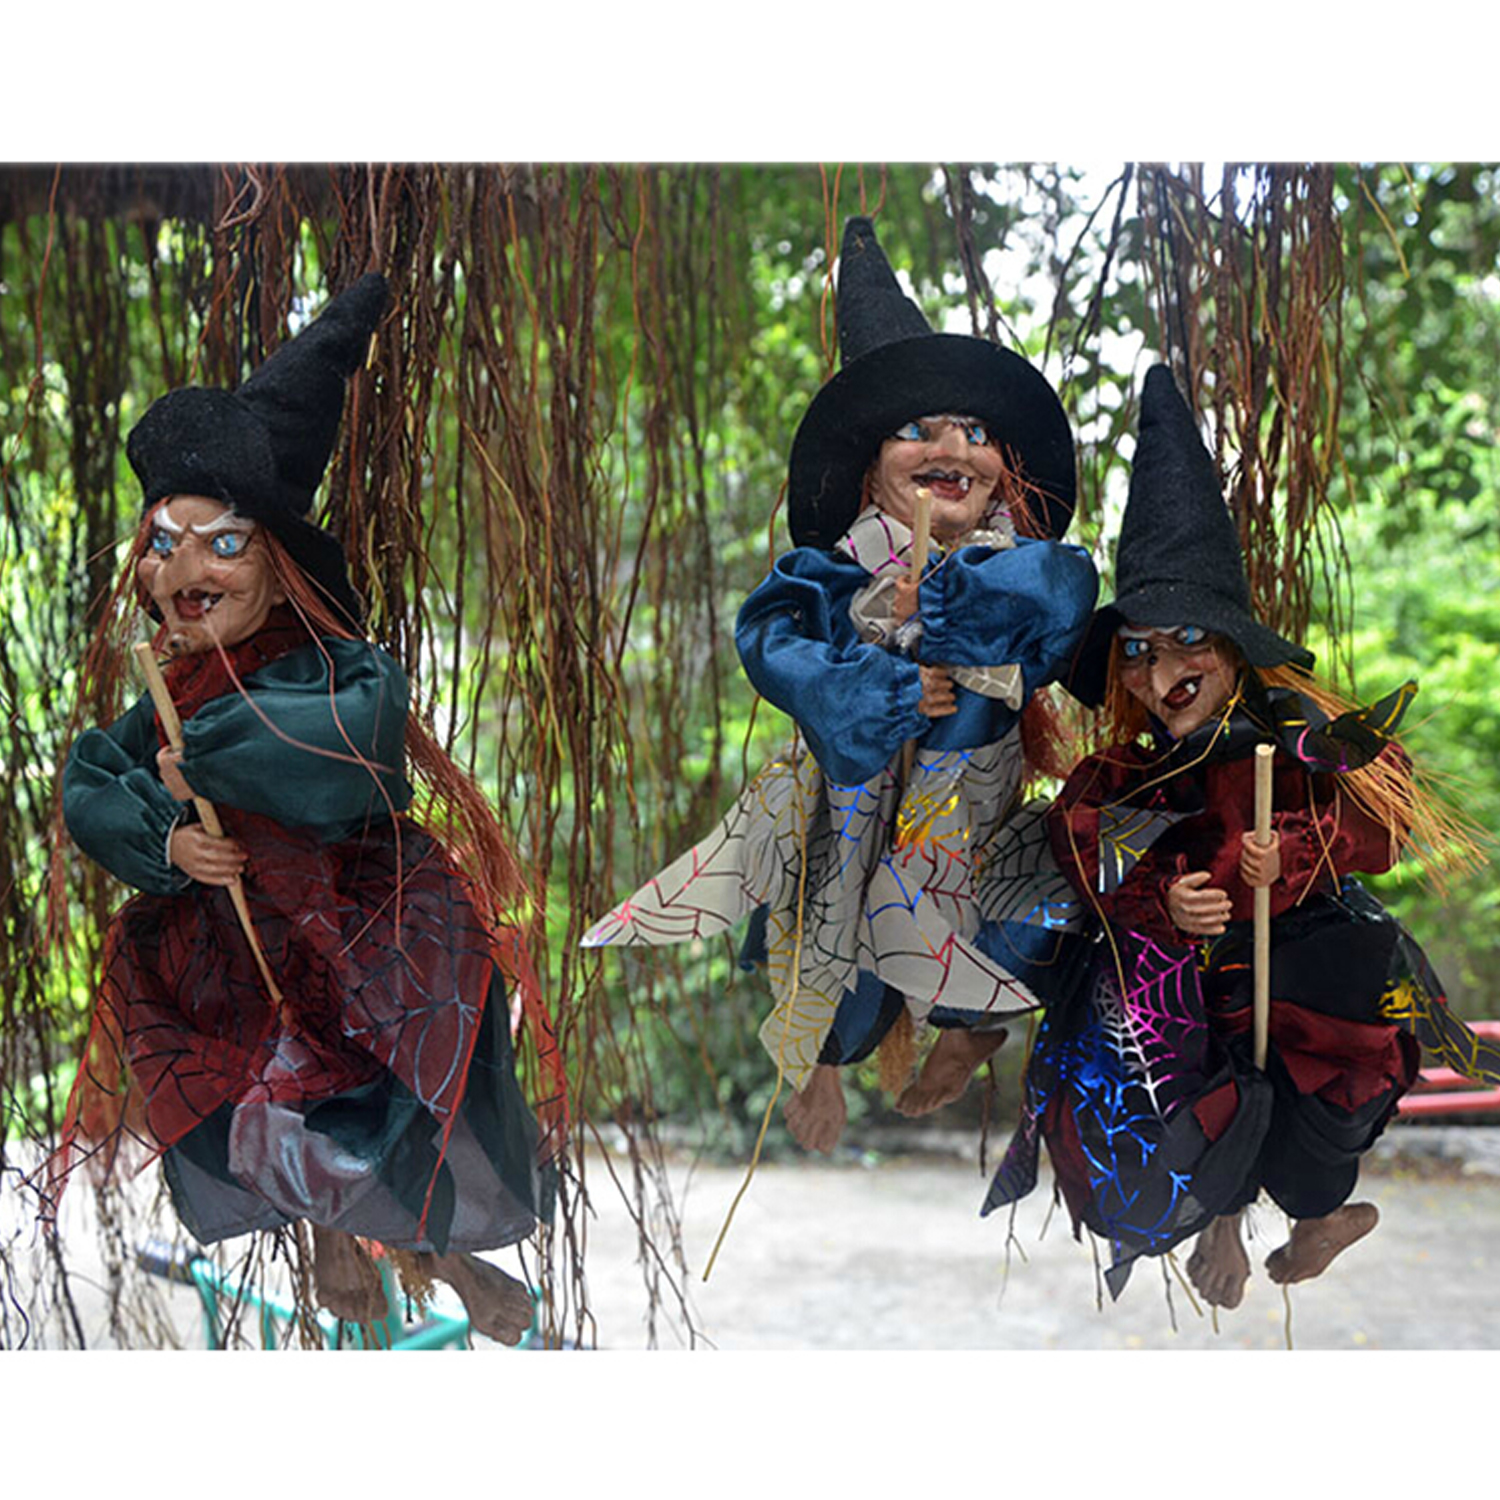 New Besegad Halloween Decoration Props Prank Toy Hanging Ghost Witch Laughing Sound Control Gags Hanging Witch Practical Toys